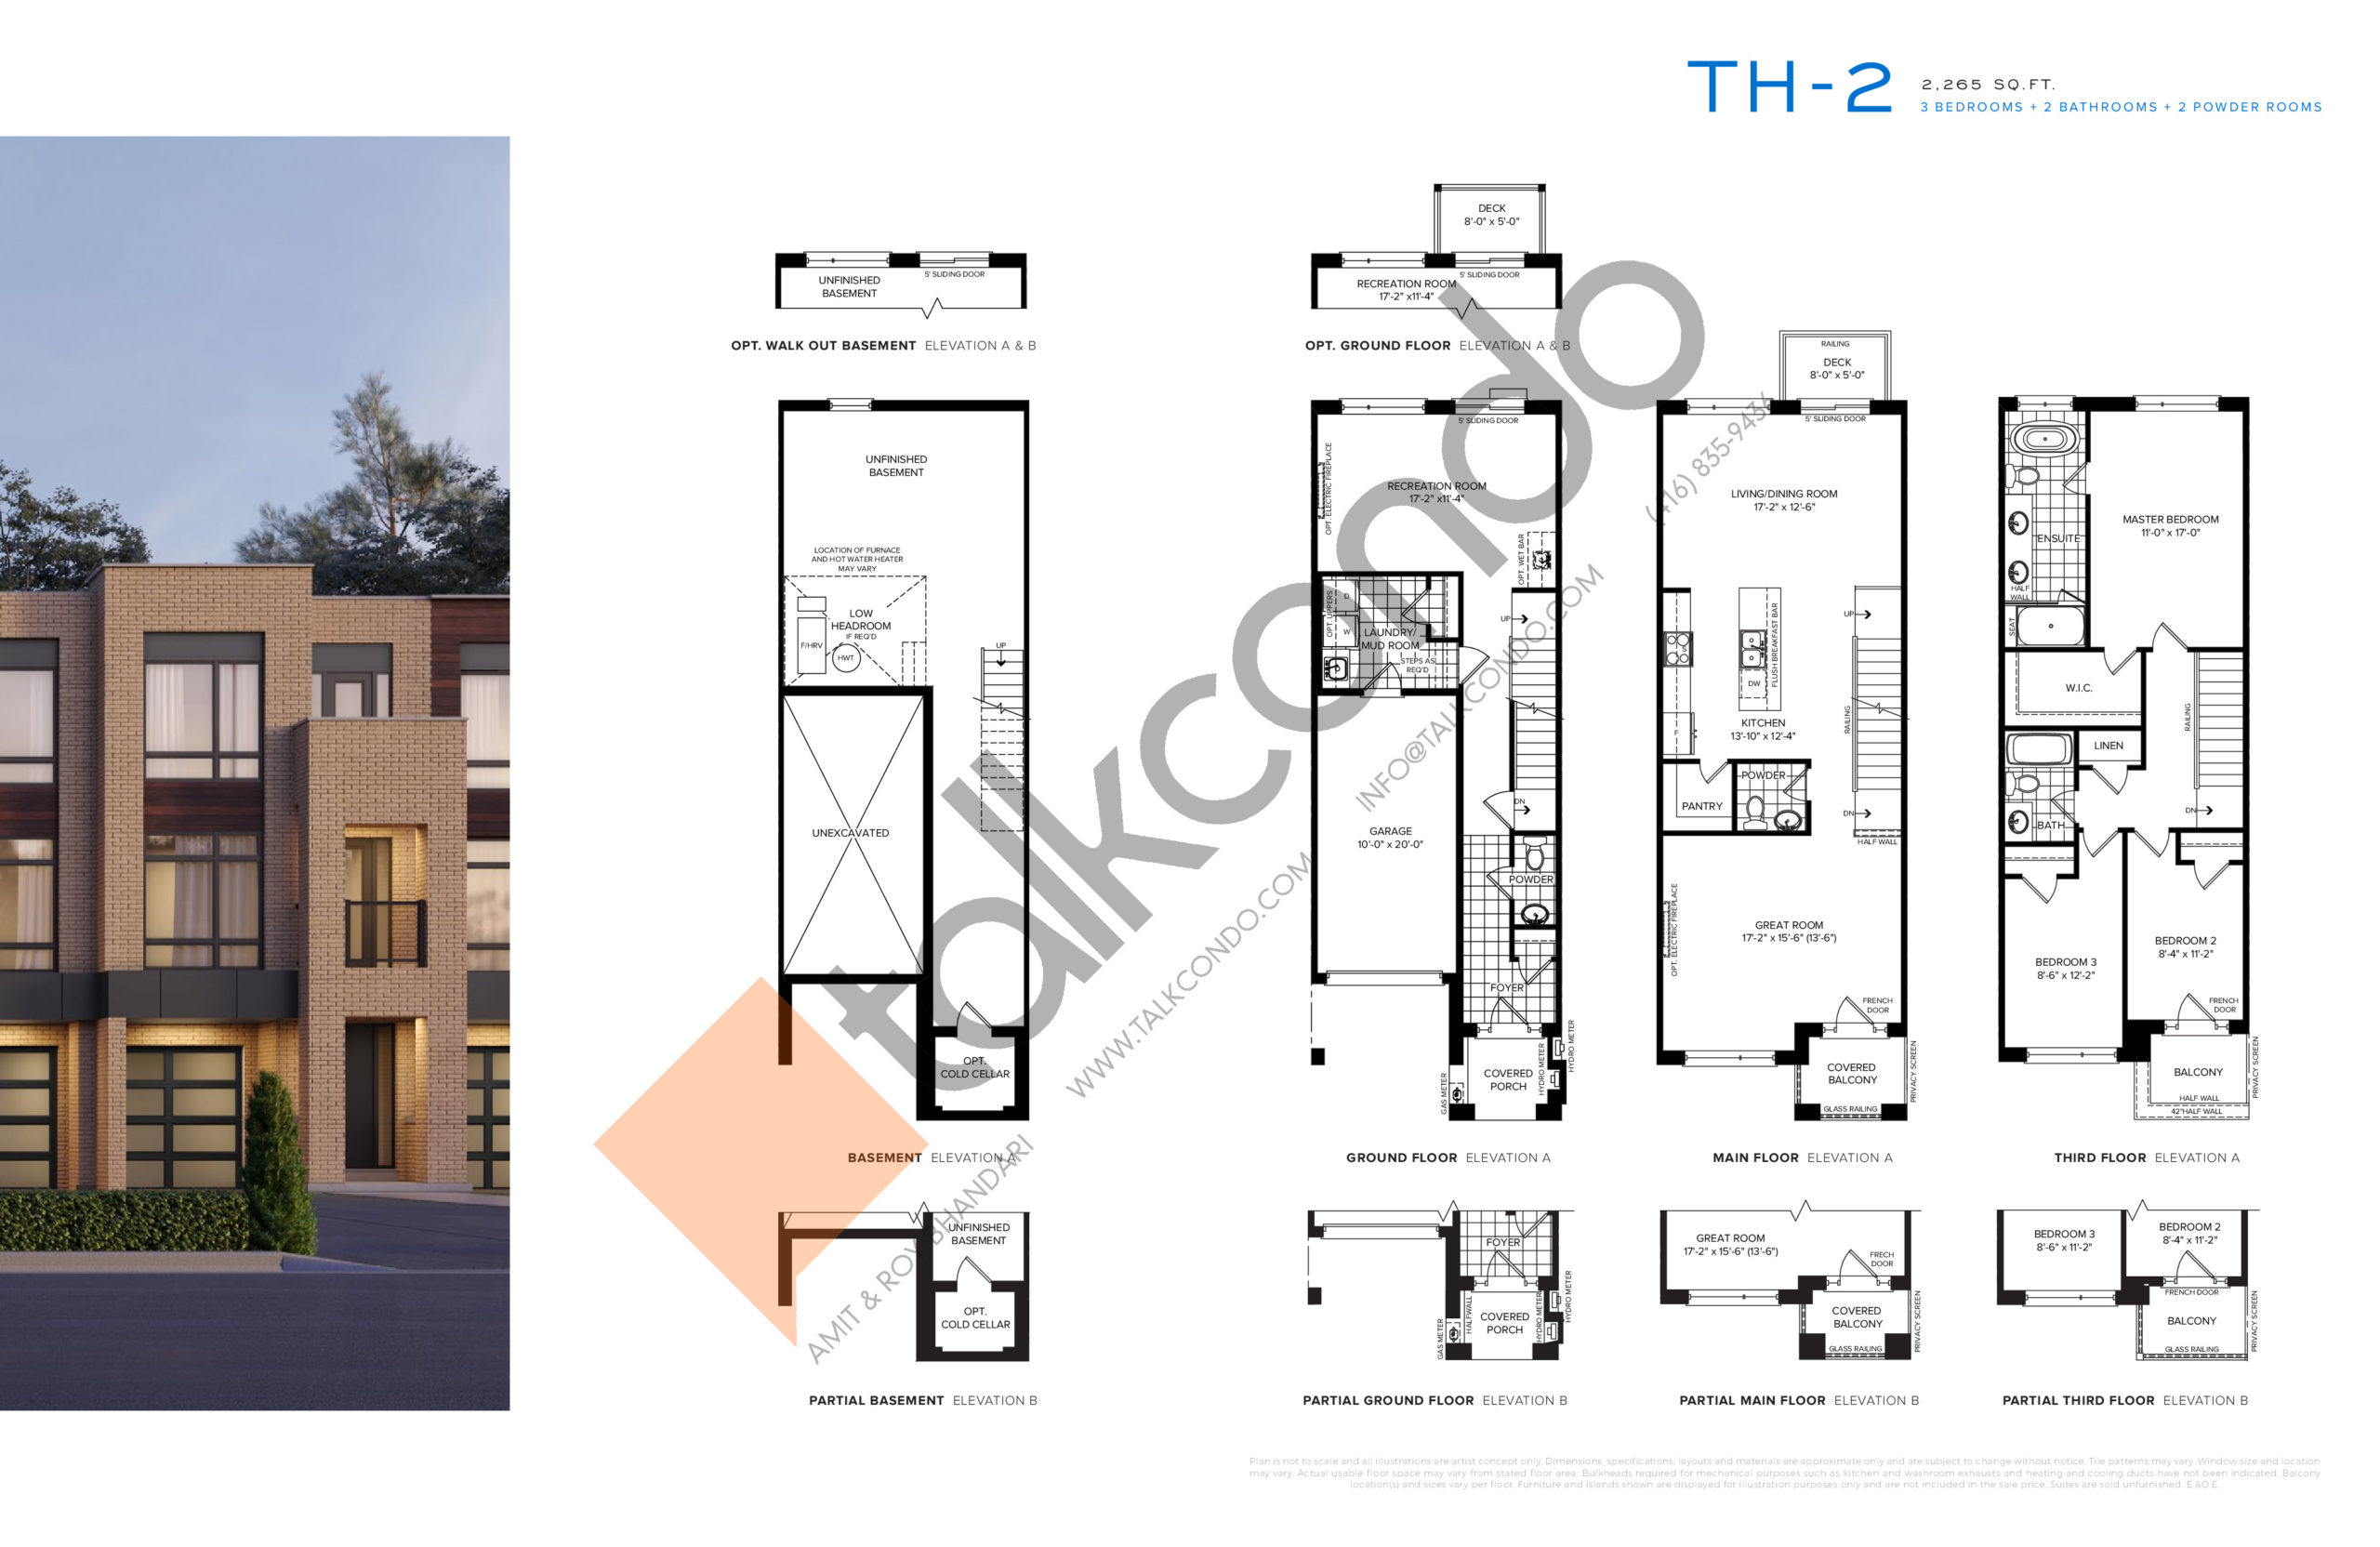 TH-2 Floor Plan at SXSW Ravine Towns - 2265 sq.ft